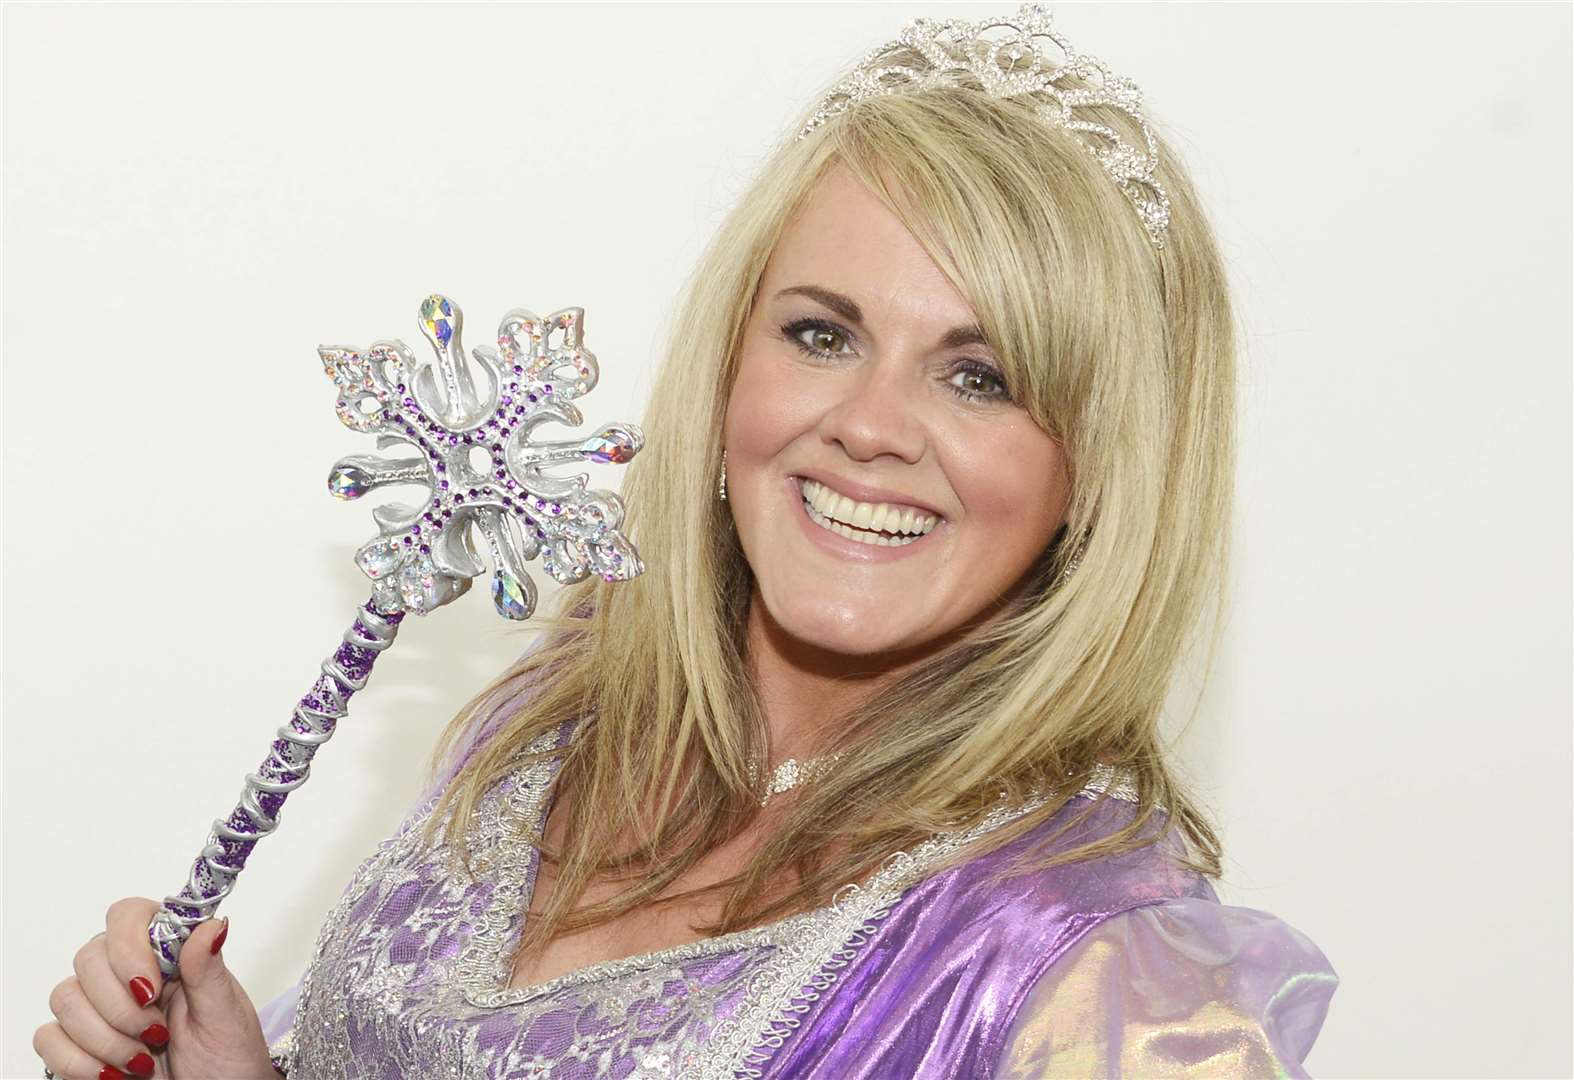 Coronation Street star Sally's ready for panto - oh yes she is!